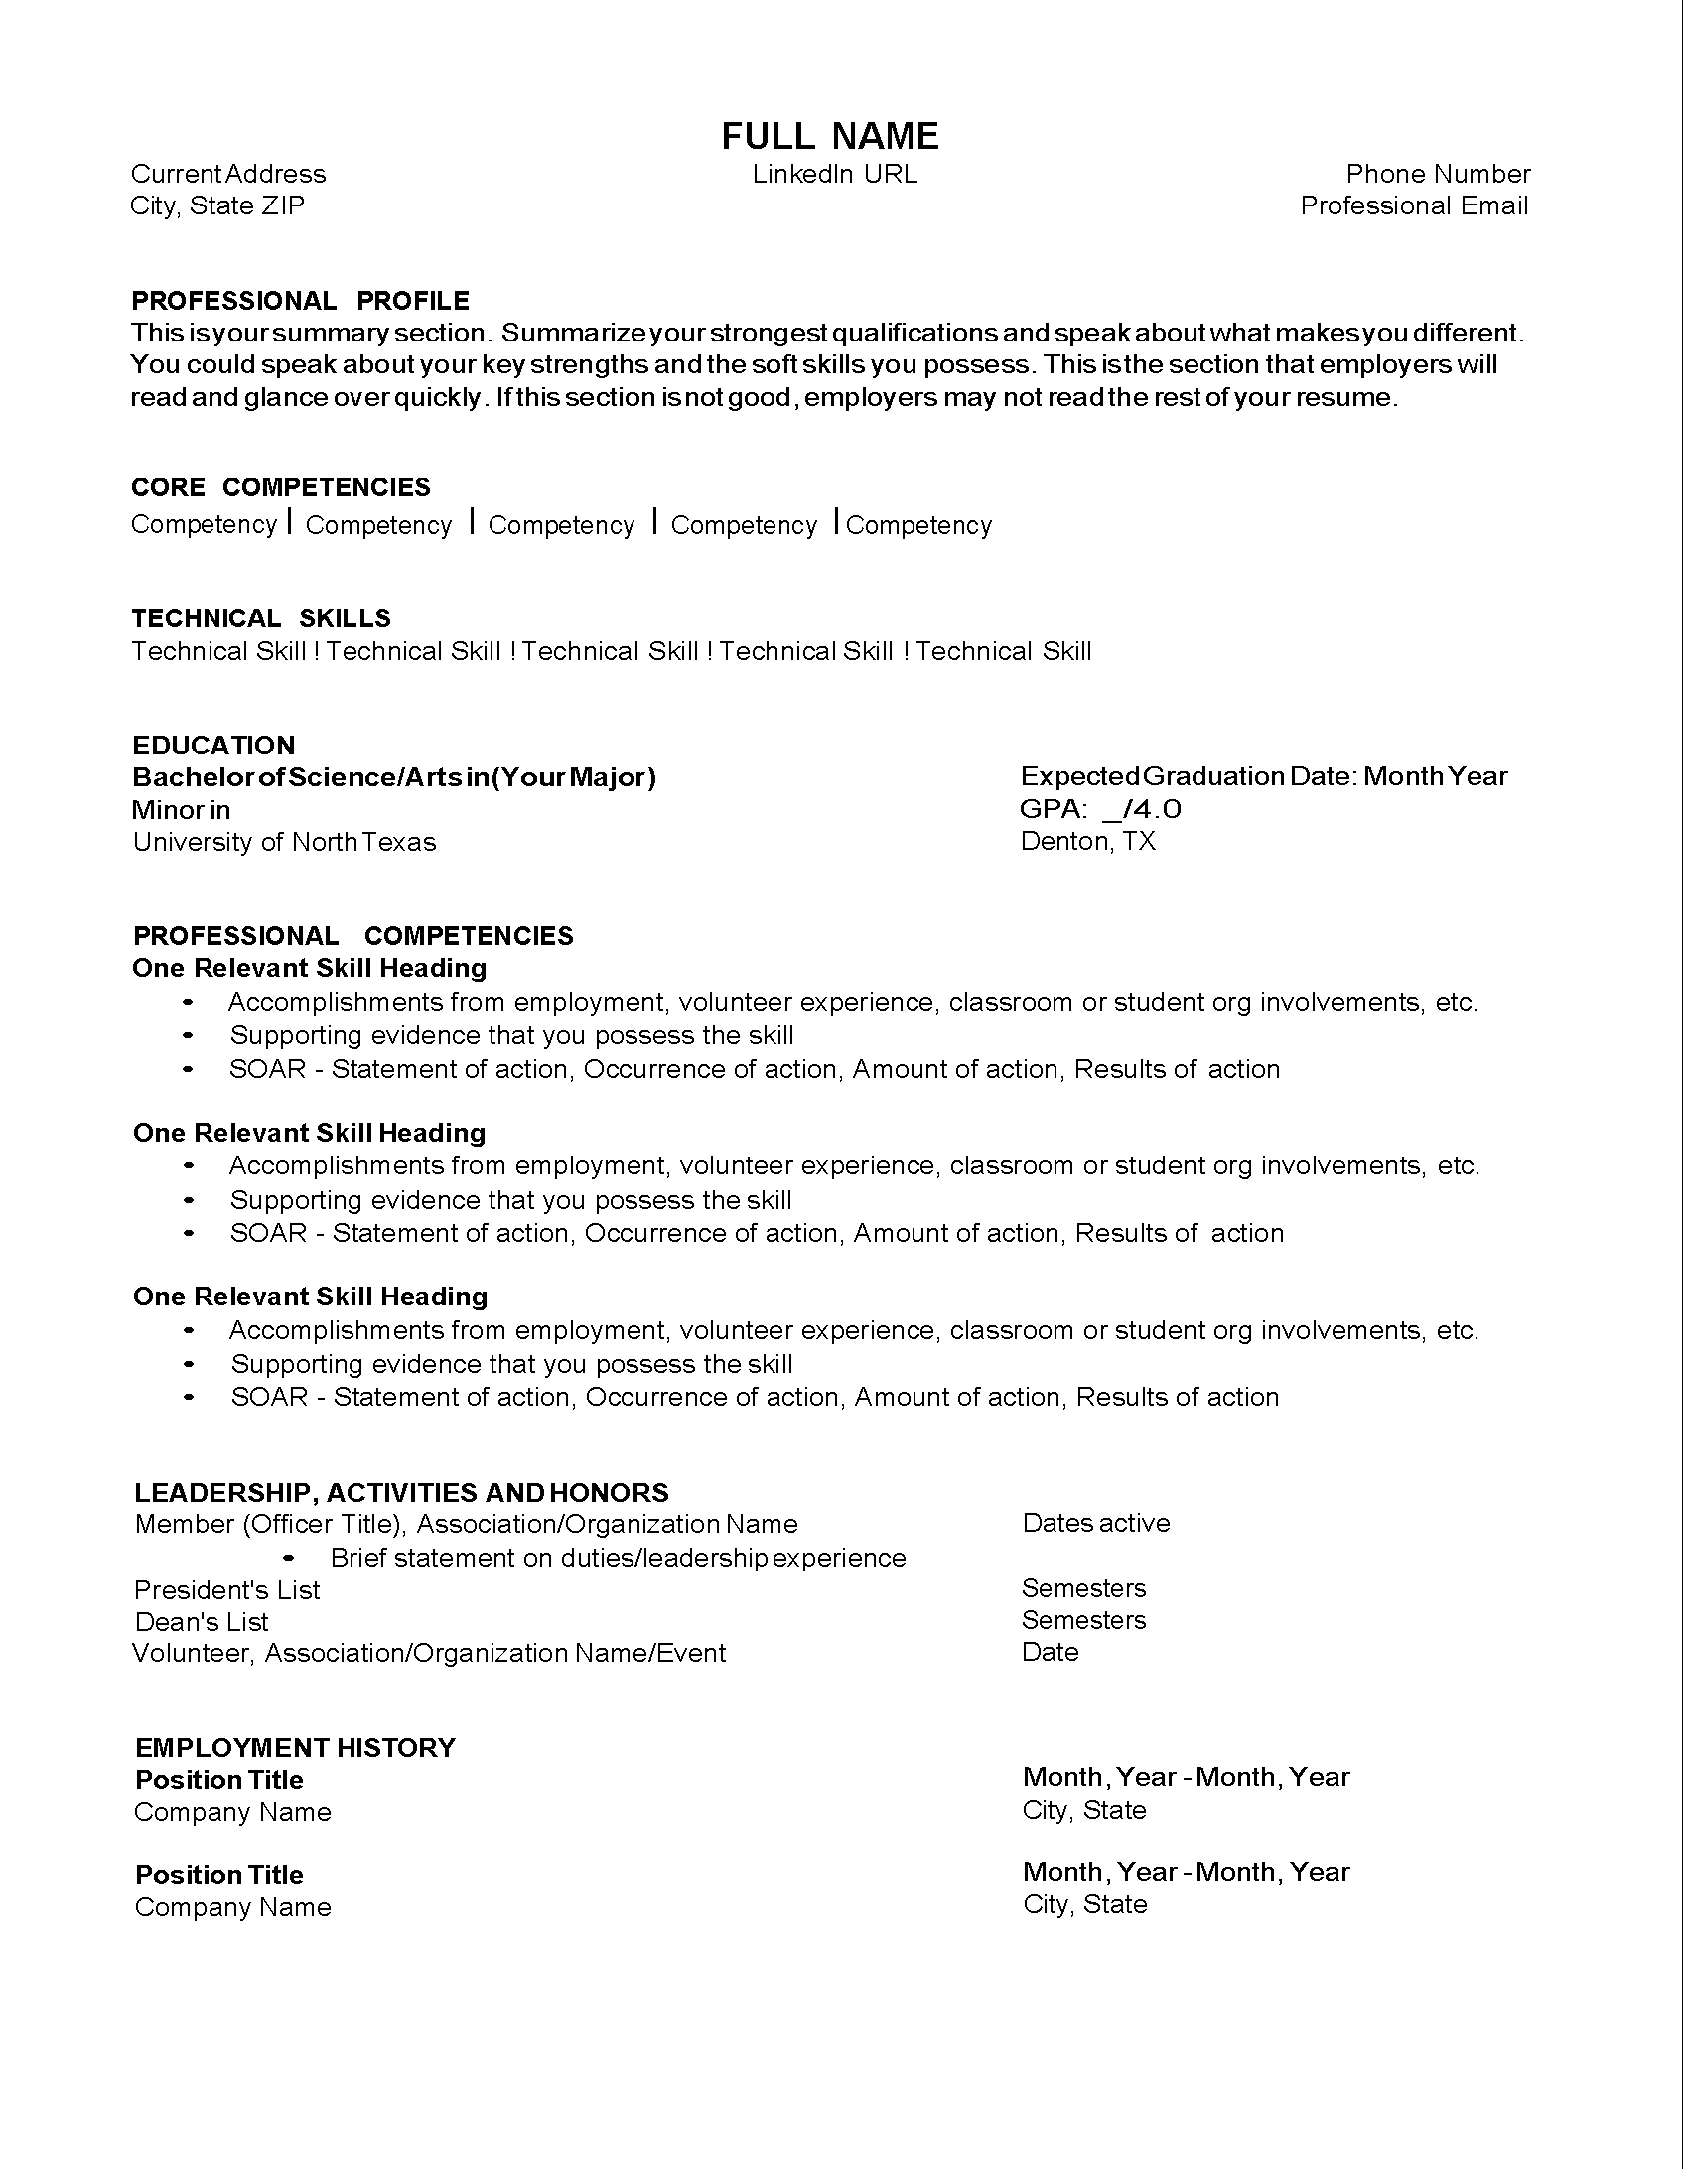 Resume Samples Division Of Student Affairs With Images